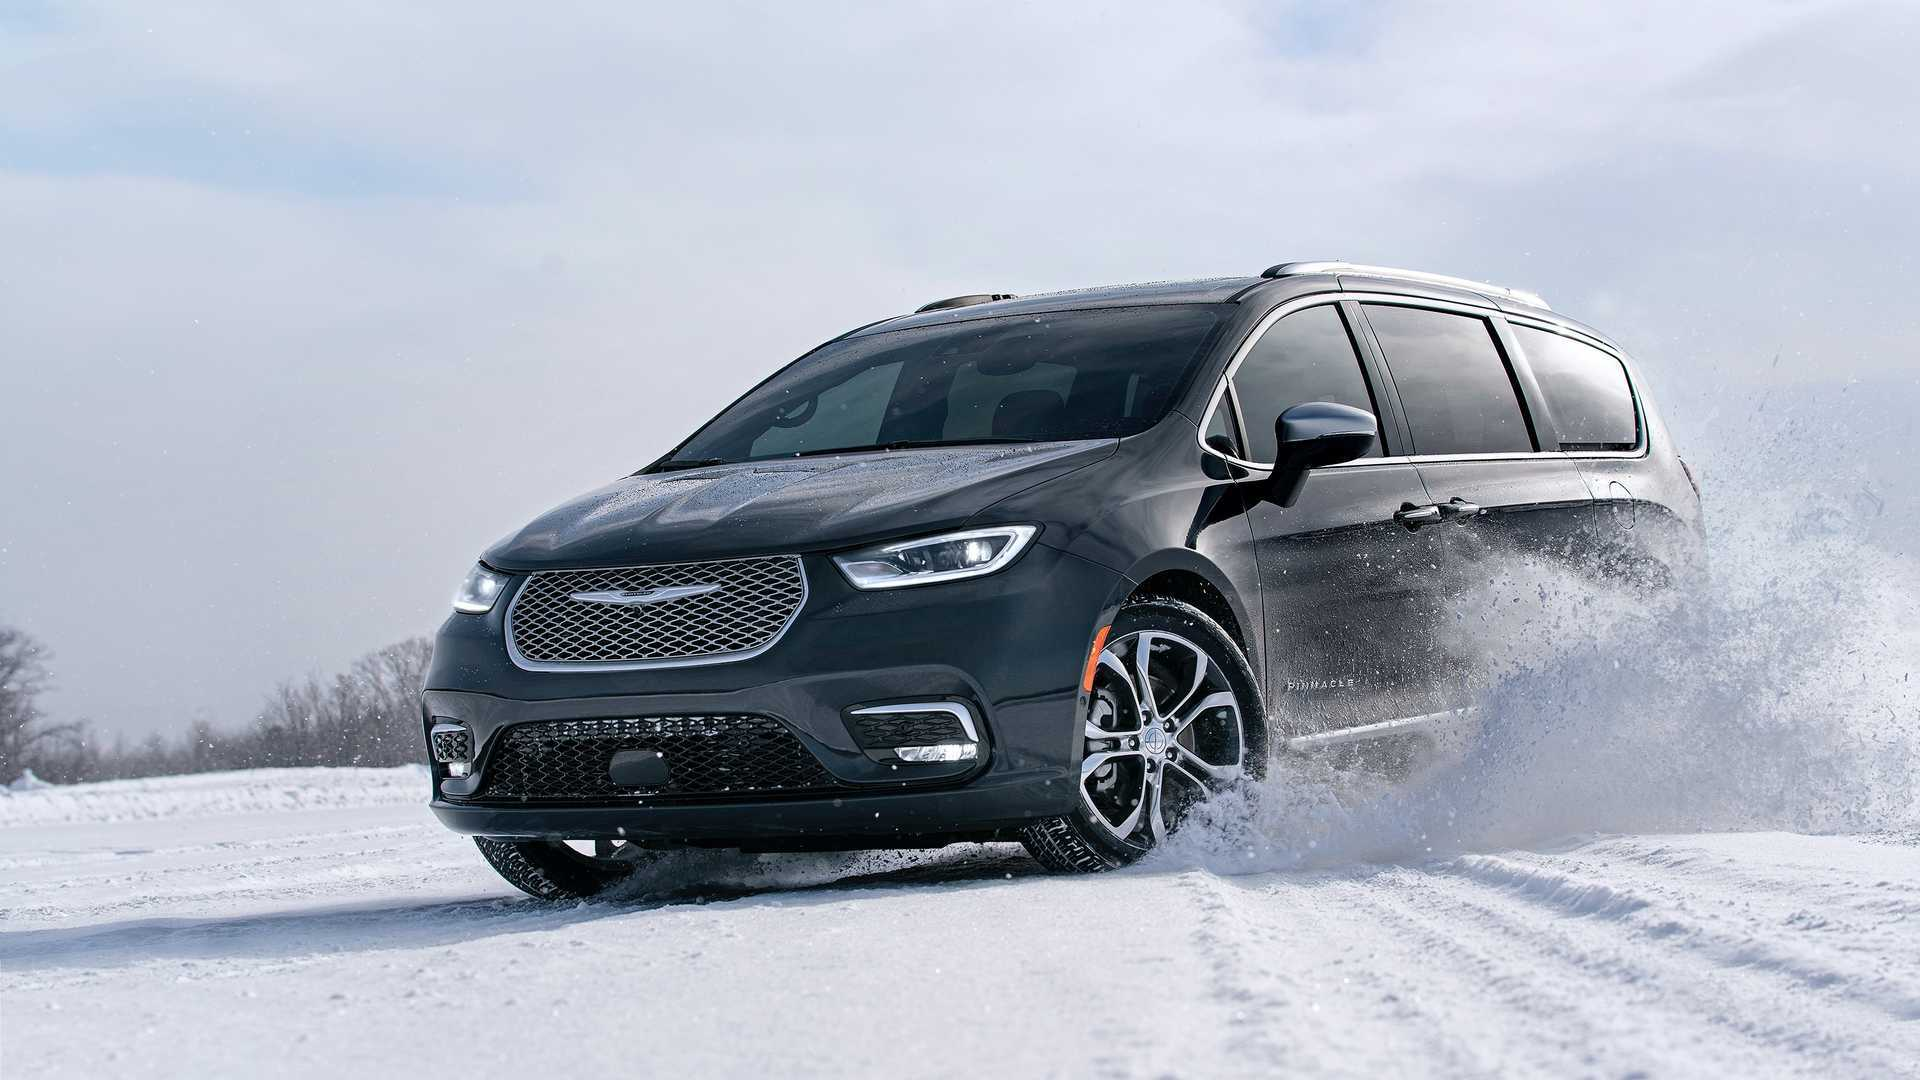 Chrysler может исчезнуть после объединения концернов